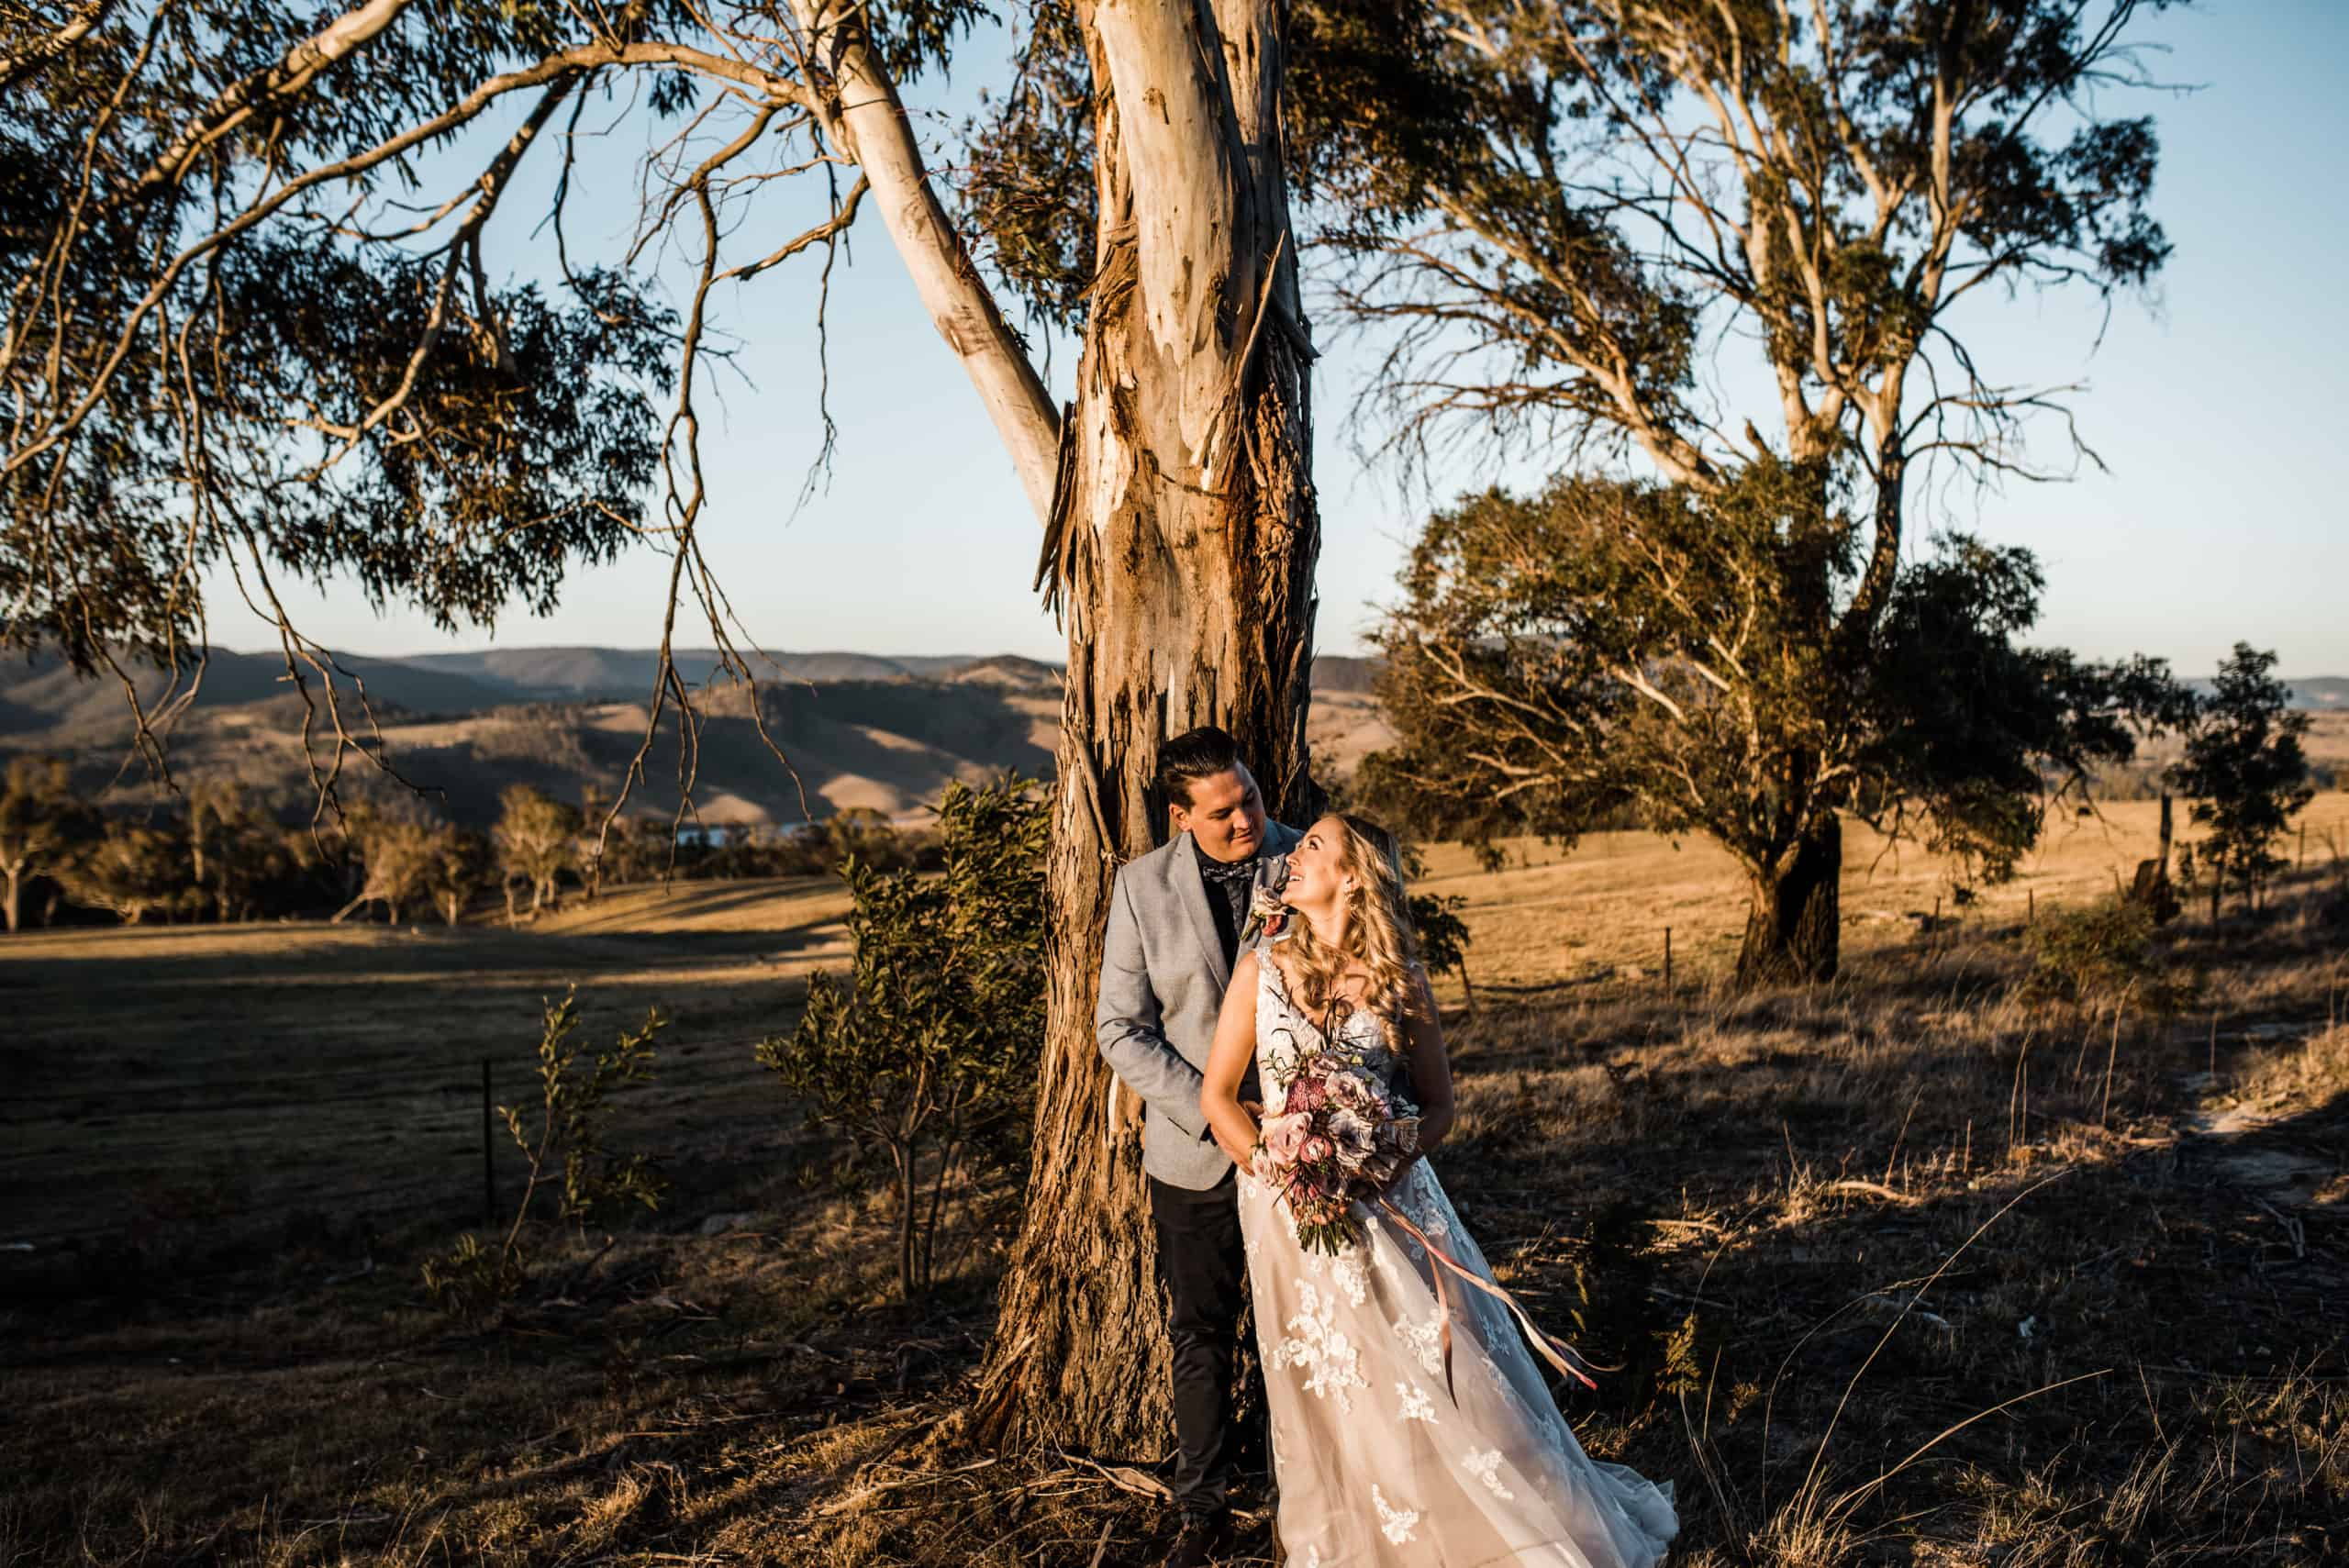 Bride and groom standing under a gumtree in Australia right after elopement ceremony.